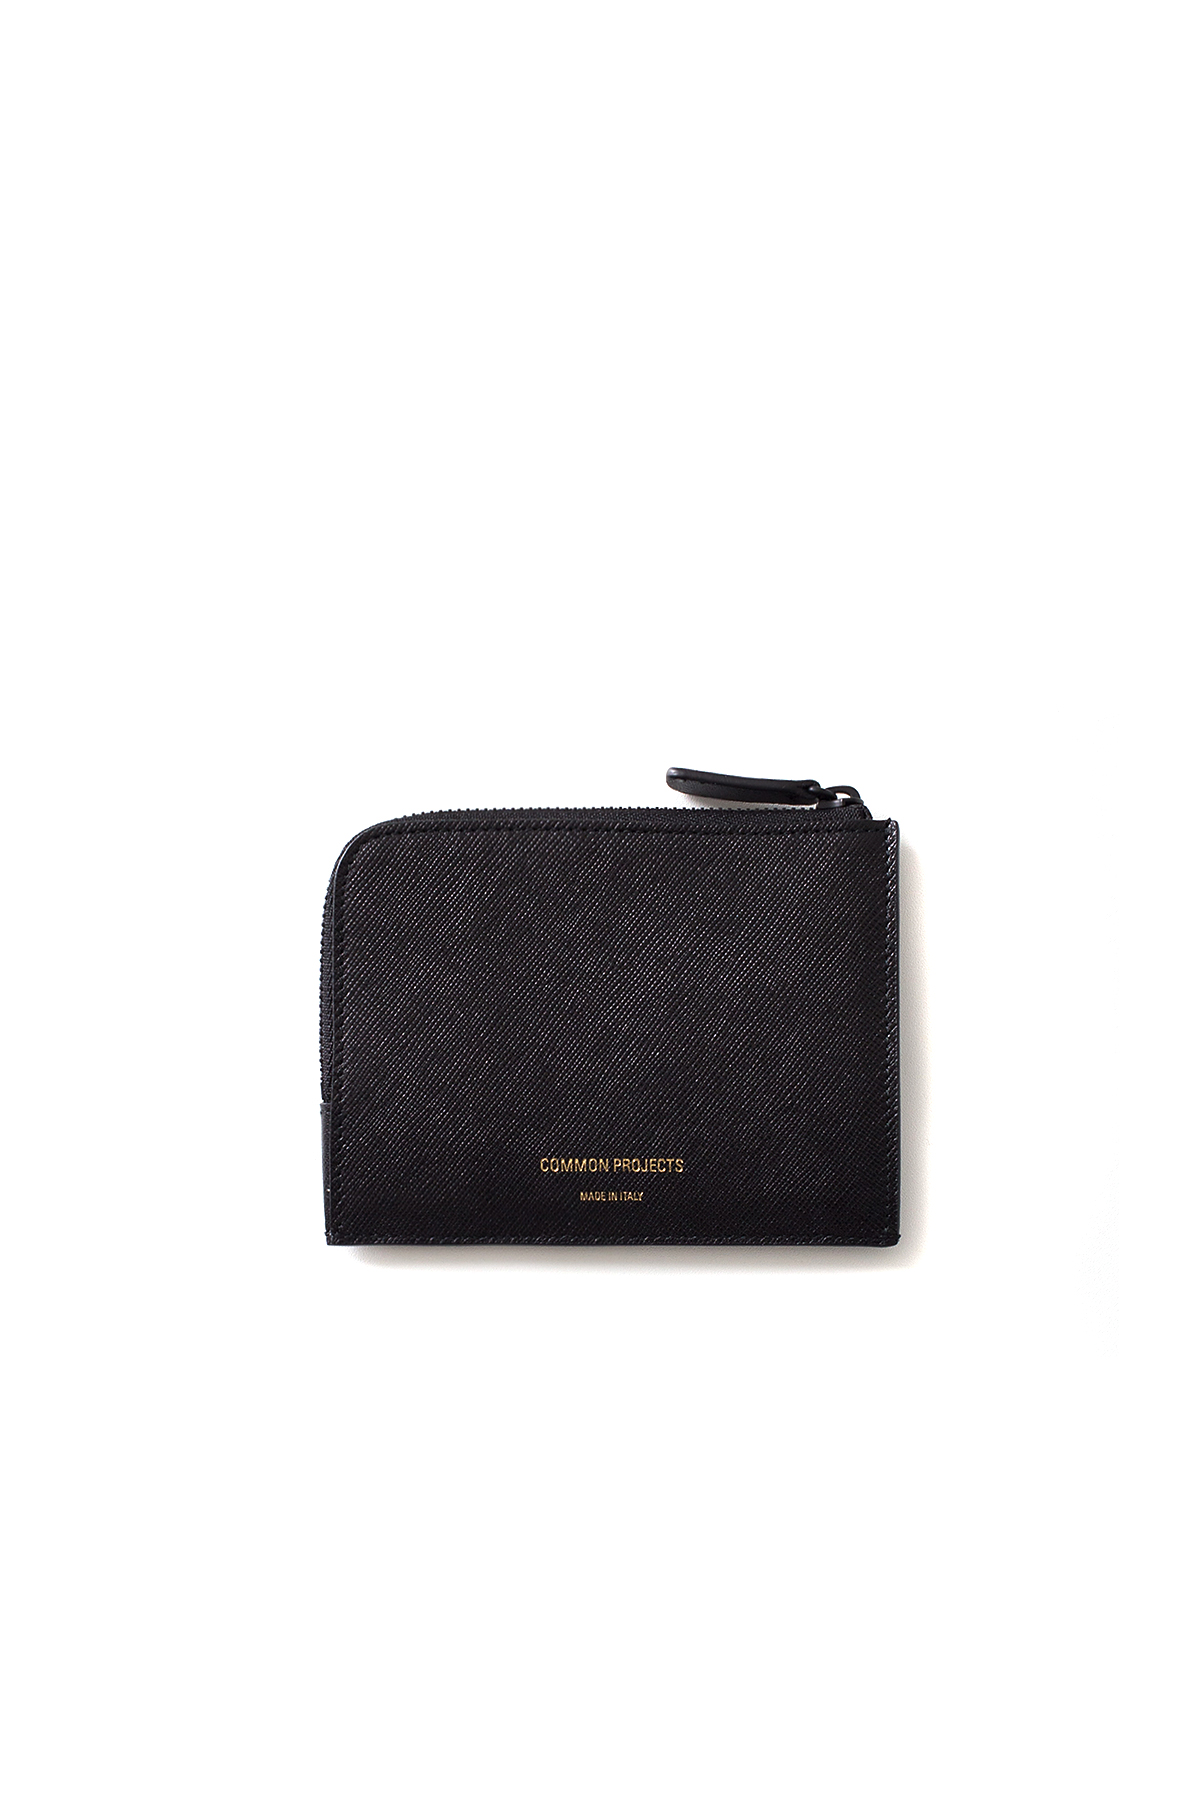 Common Projects : Zipper Wallet In Saffiano Leather 9038 (Black)